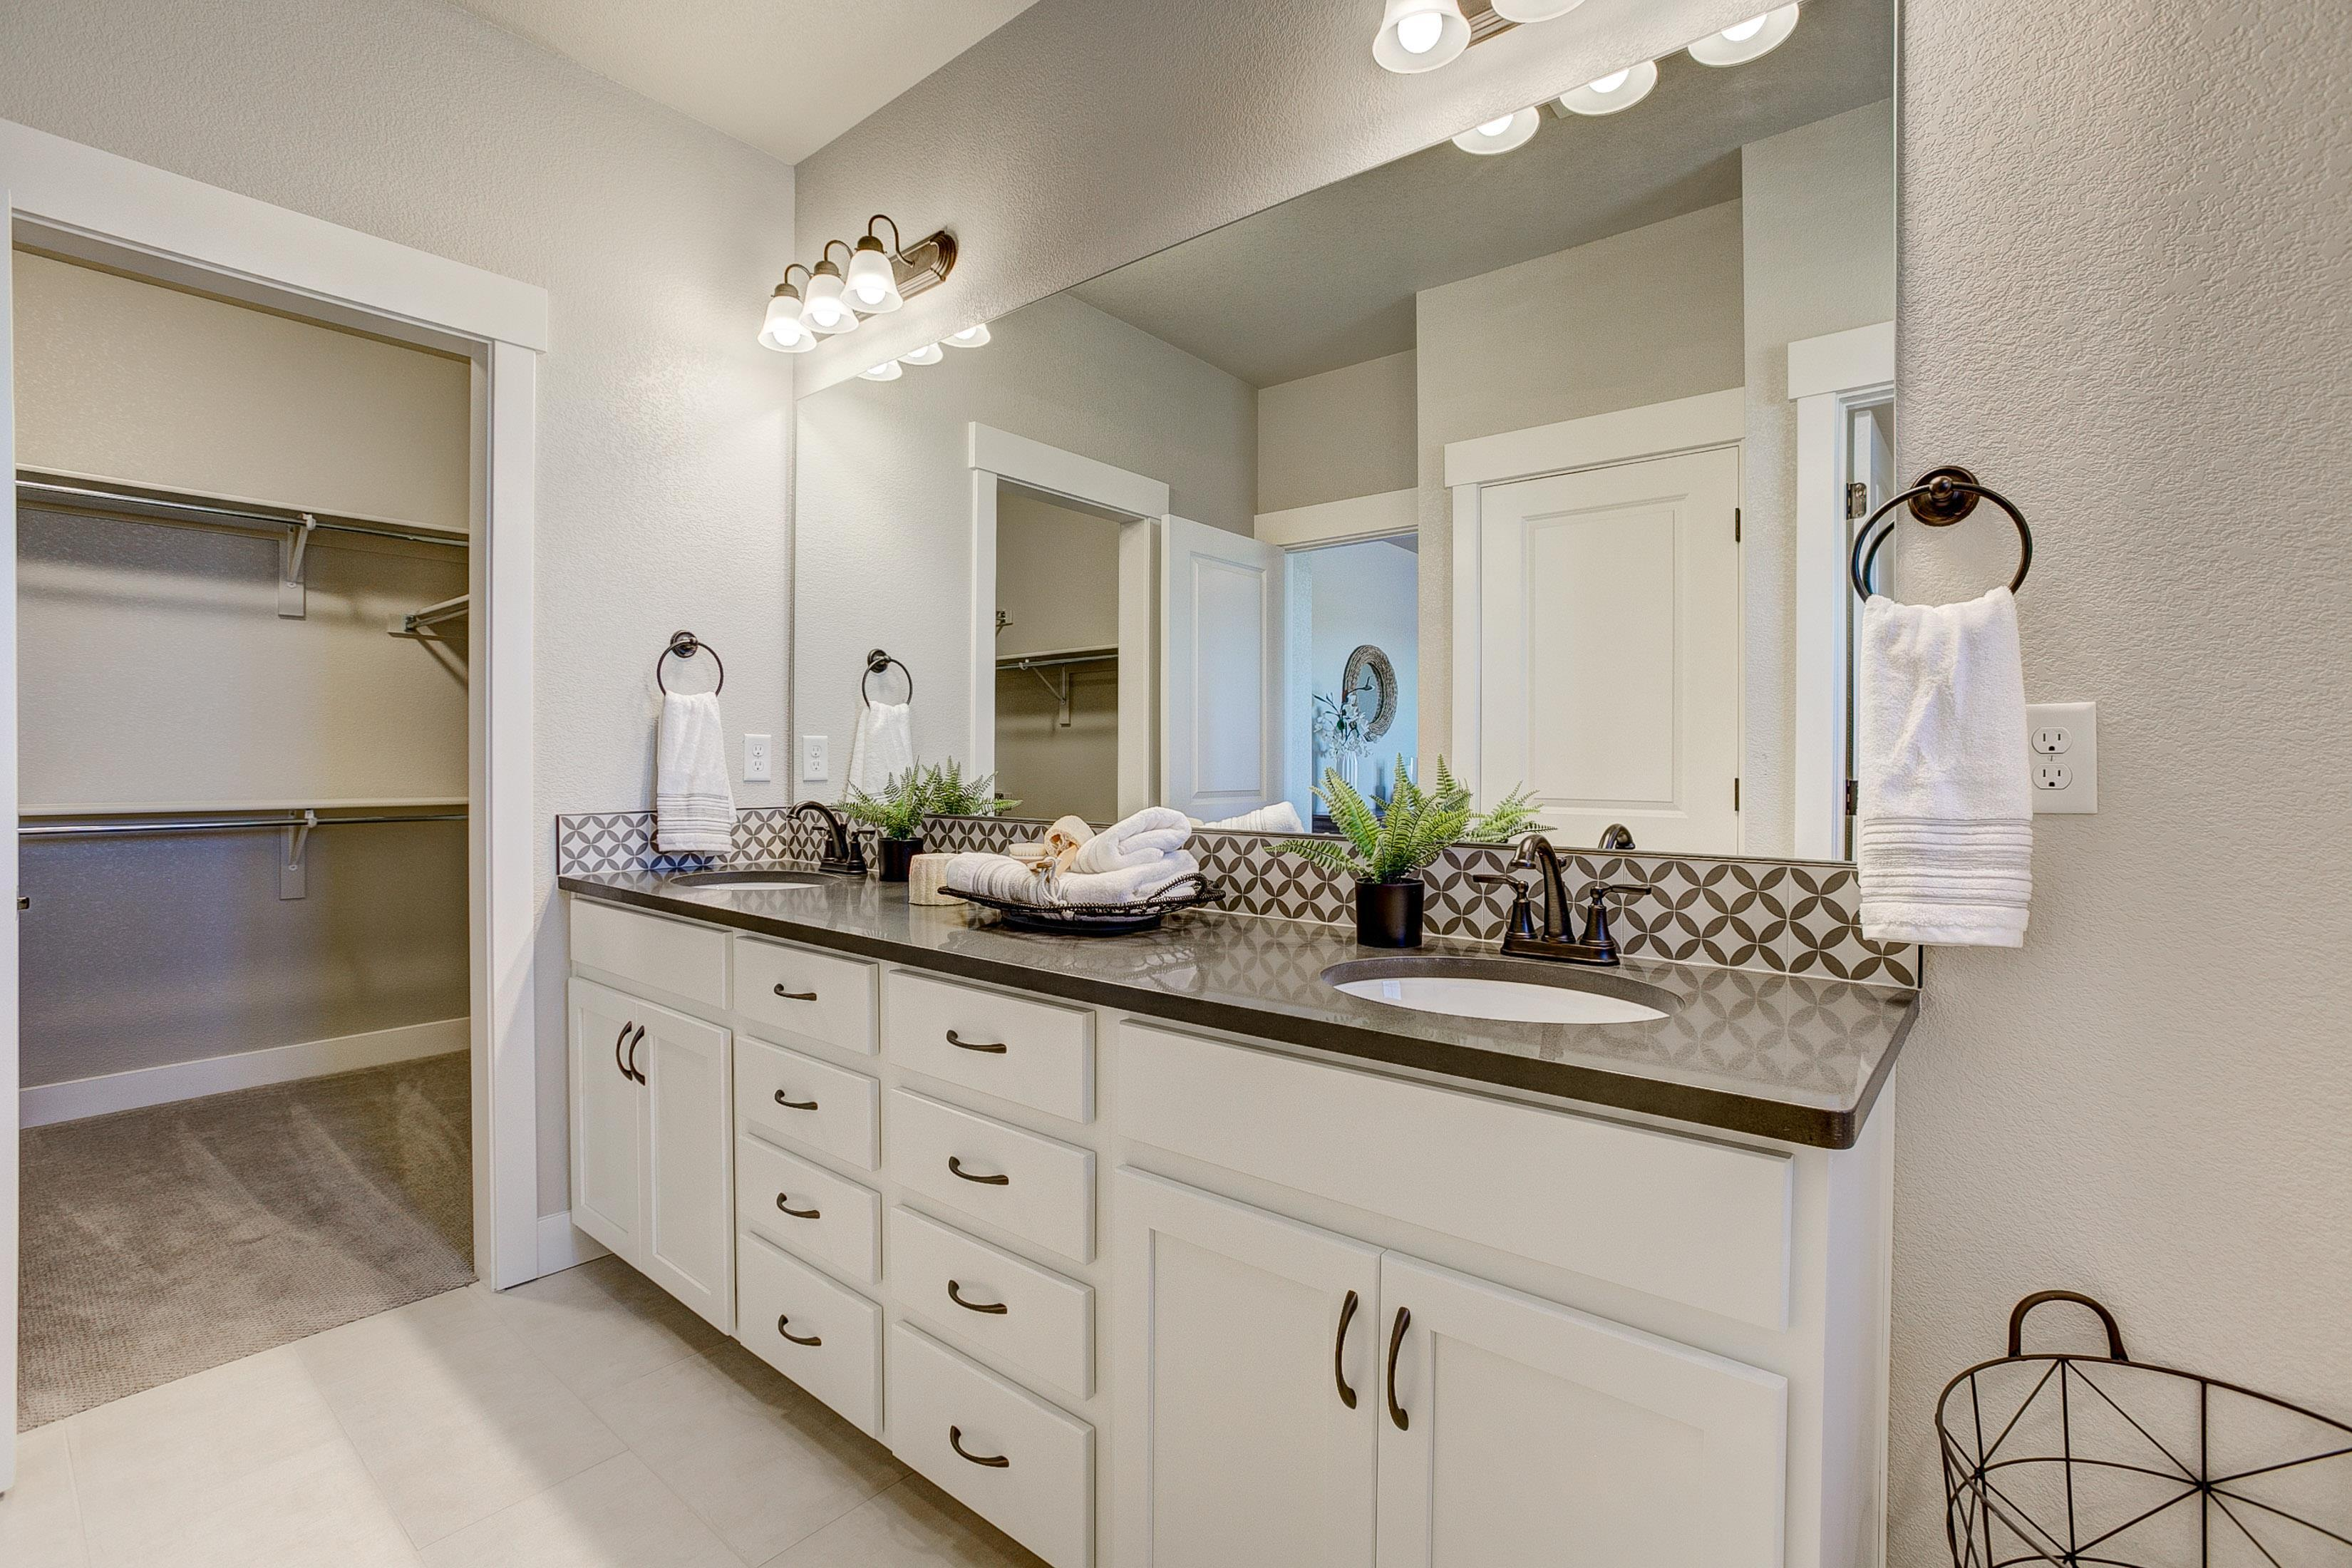 Bathroom featured in the Barrington  By Landmark Homes  in Fort Collins-Loveland, CO